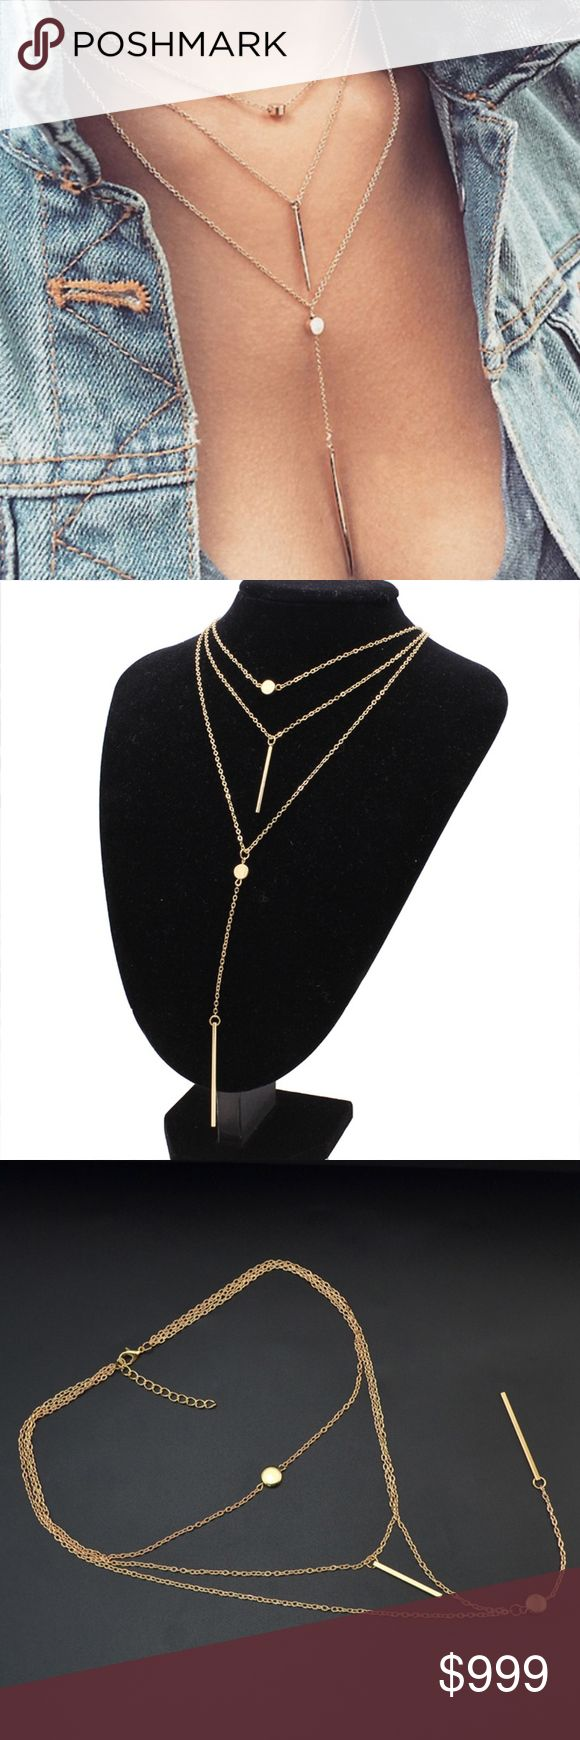 "COMING SOON! Boho Gold Layered Coin & Bar Necklace COMING SOON!! ""Like"" To Be Notified!! Brand new in original packaging. Trendy 2018 multilayer gold necklace! Simple boho chic style gold coin & vertical bar pendants of various lengths! Triple layered measurements: 17.7"" 19.3"" 22"" + extender for adjustable length. Pendant sizes: approx 3cm & 5cm. Also available in silver! Made of gold electroplated metal, nickel & lead free. All sales are final, please ask all questions prior to purchasing…"